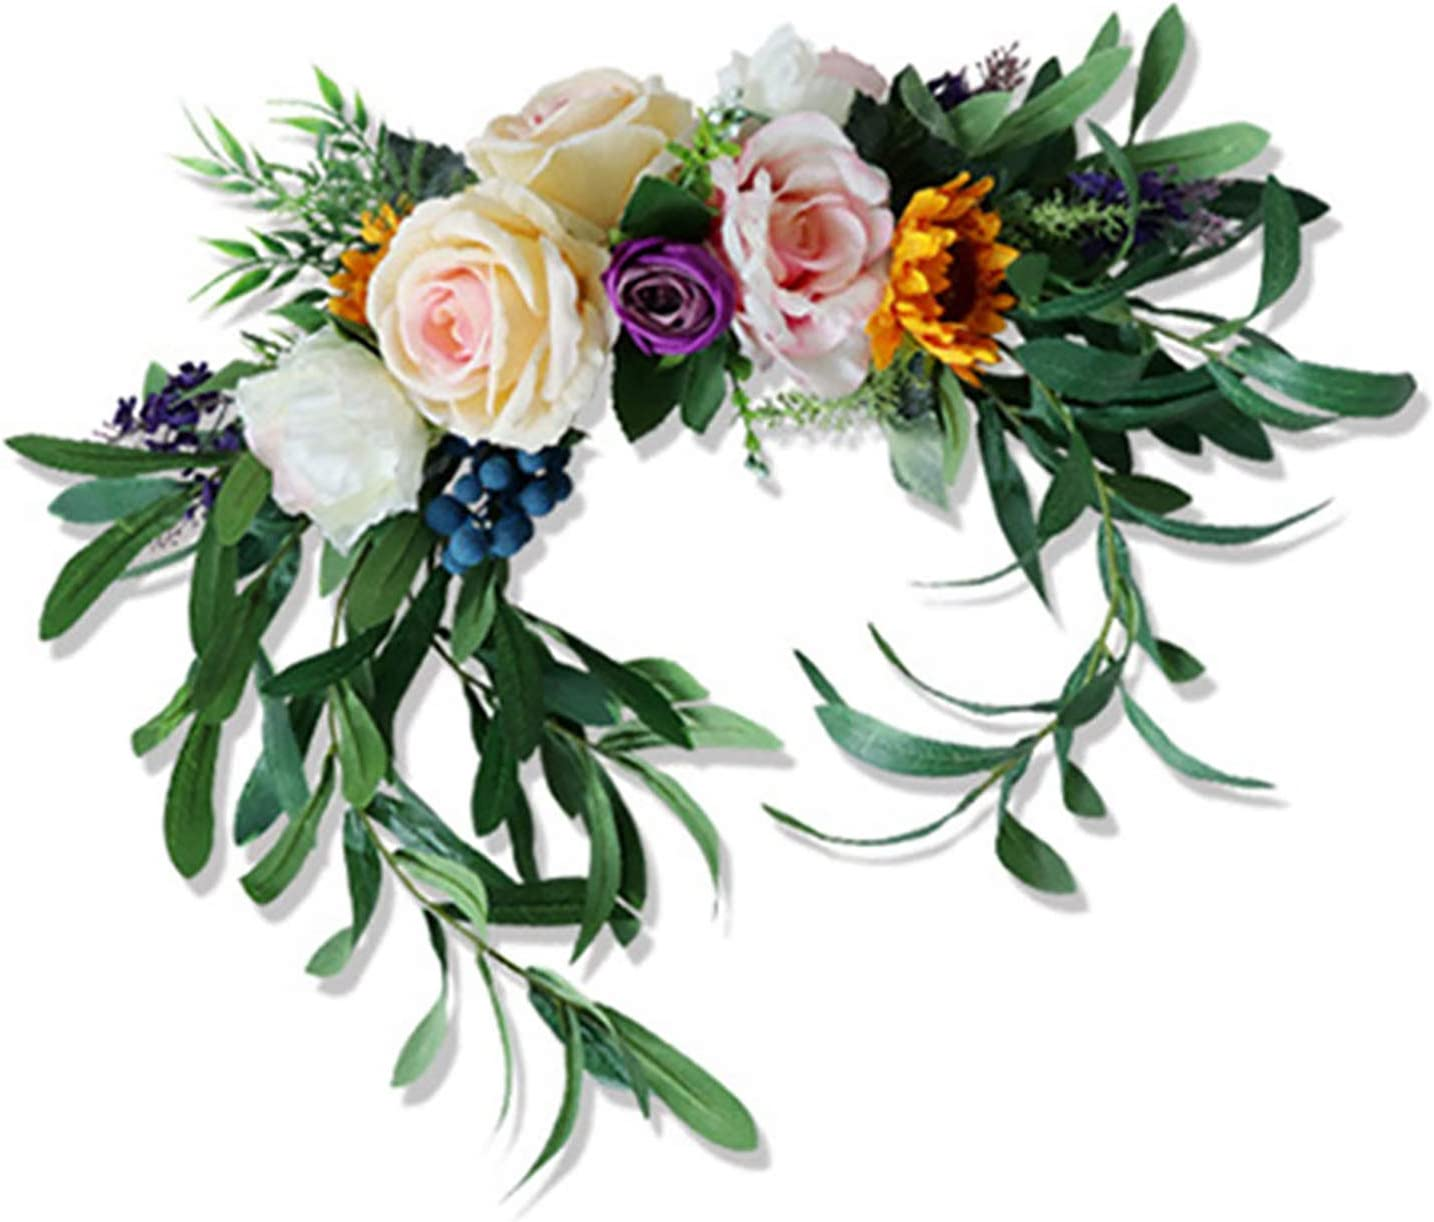 NMFIN Artificial Flower Swag, Handmade Floral Simulation Rose Peony Swag Arch Wreath Centerpiece for Wedding Home Front Door Garden Lintel Decoration